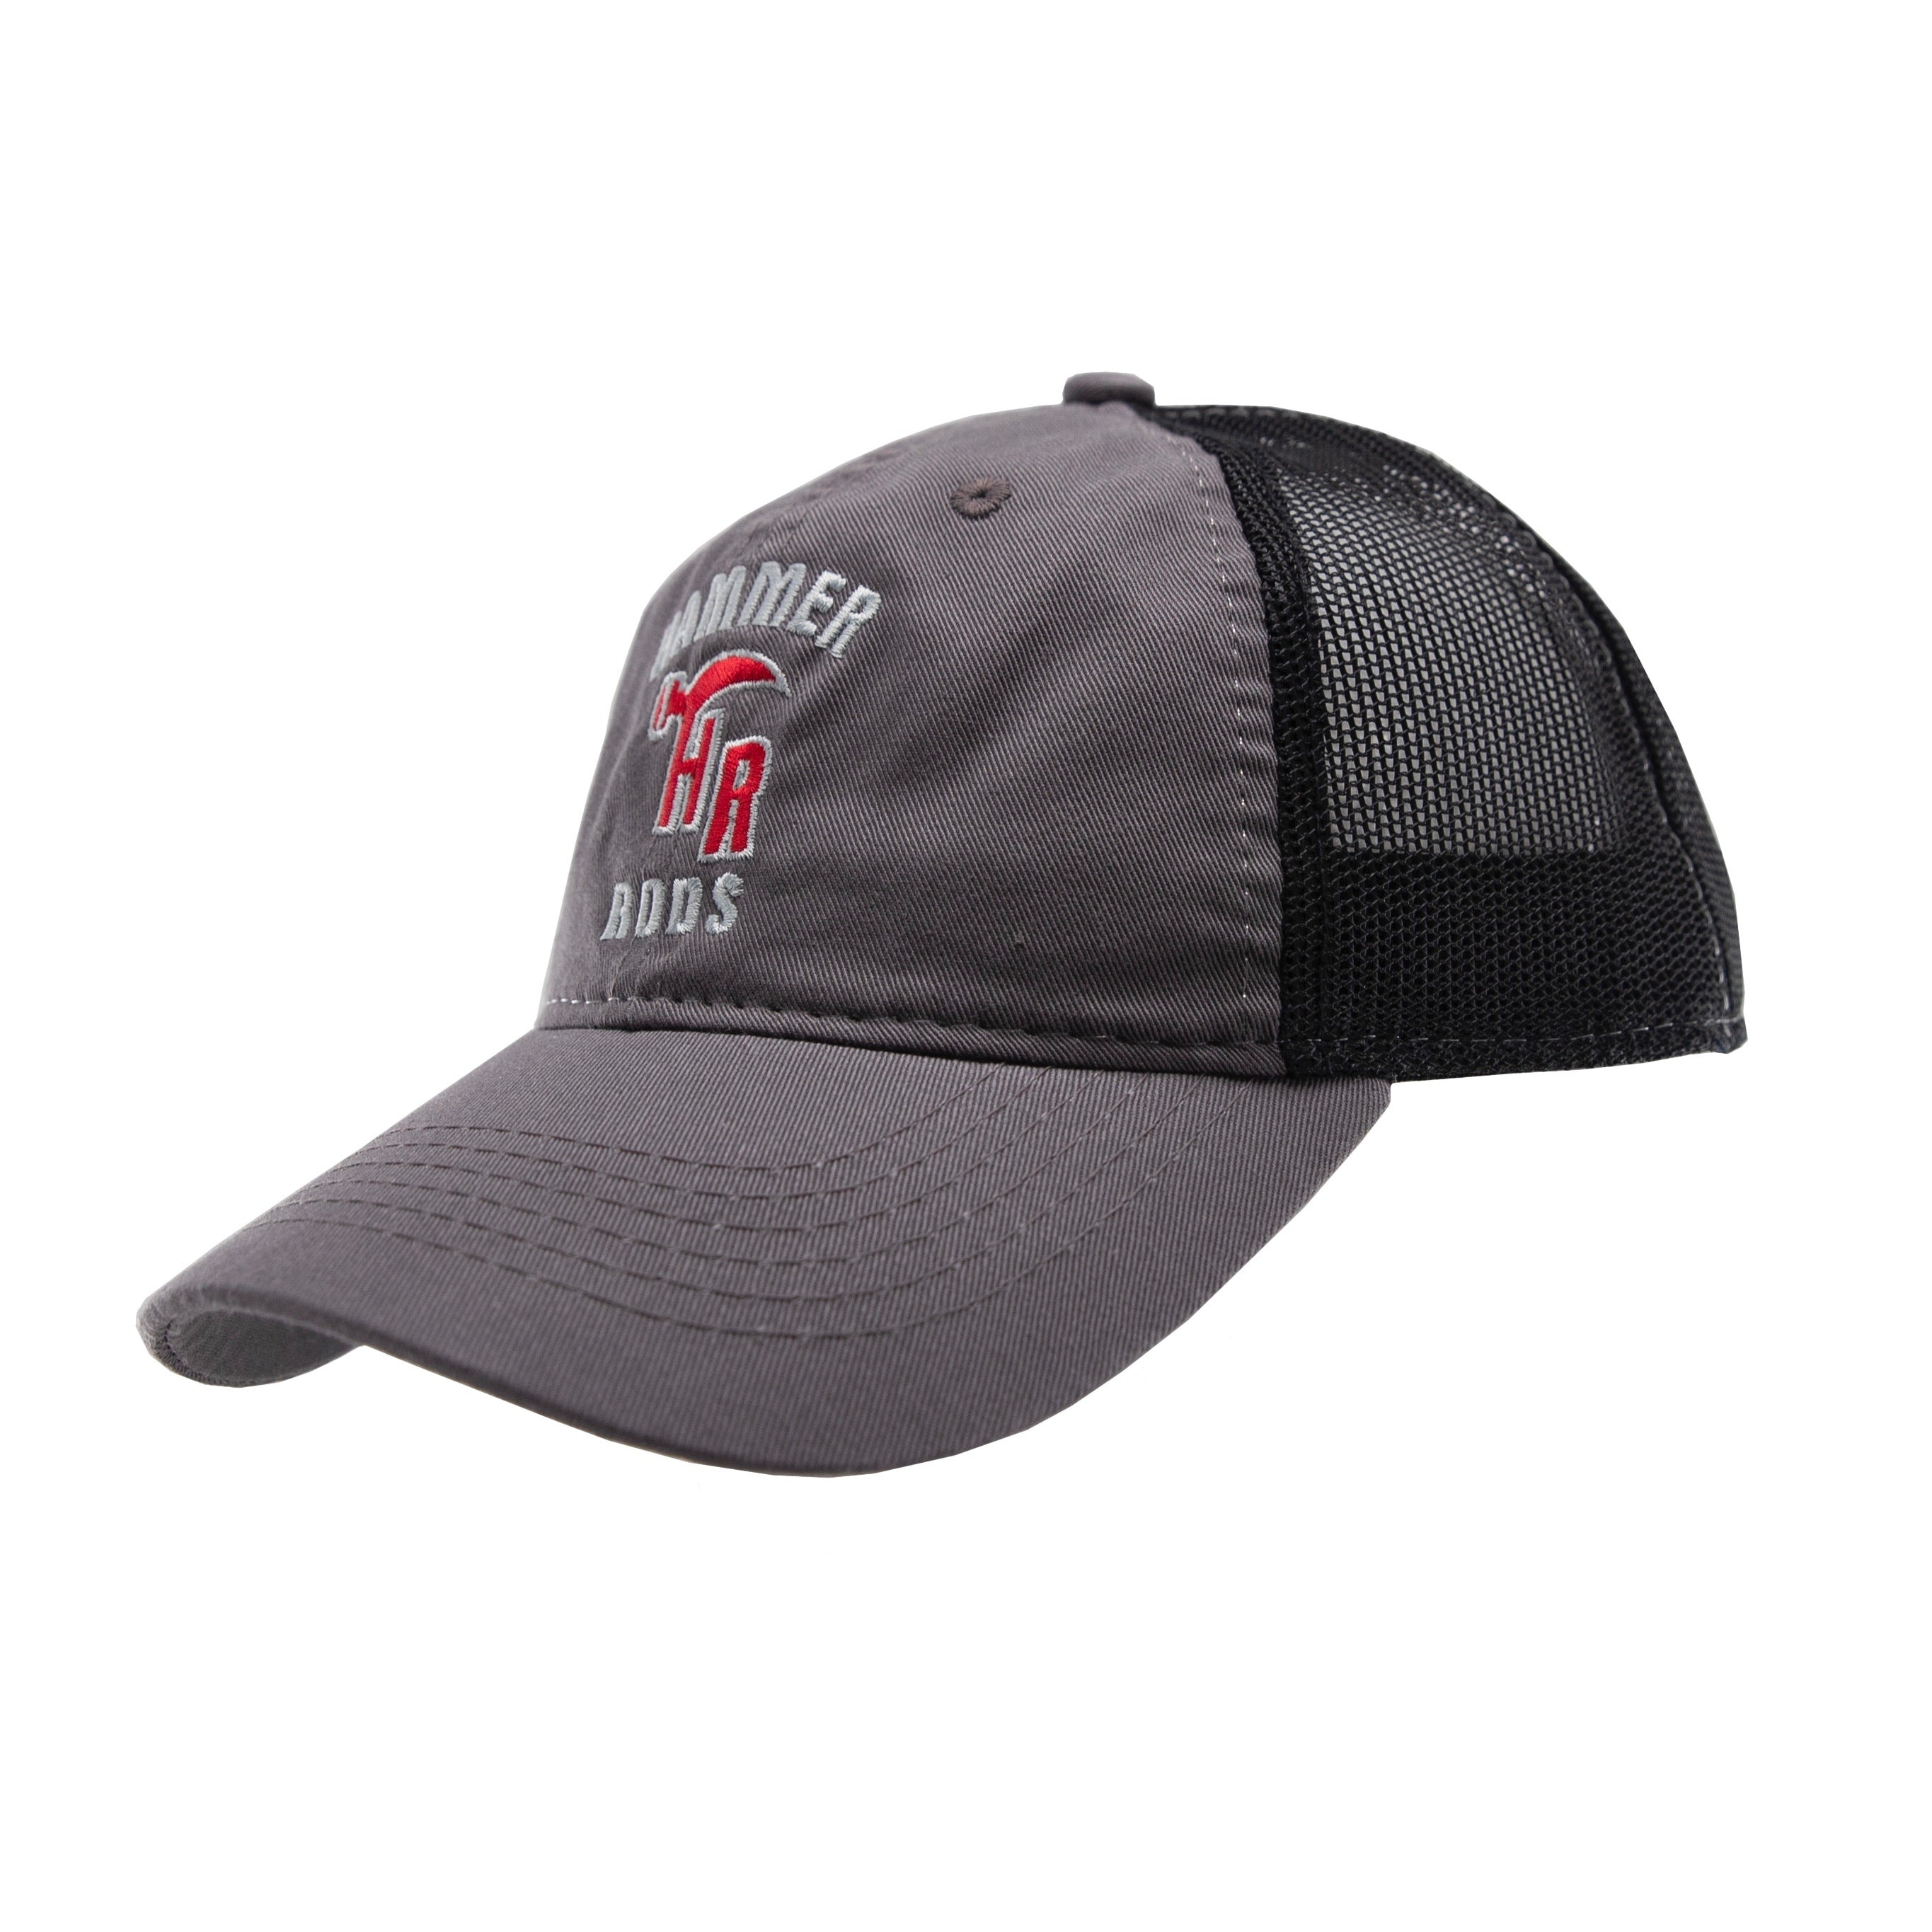 Hammer Platinum Fit Cap - Grey & Black